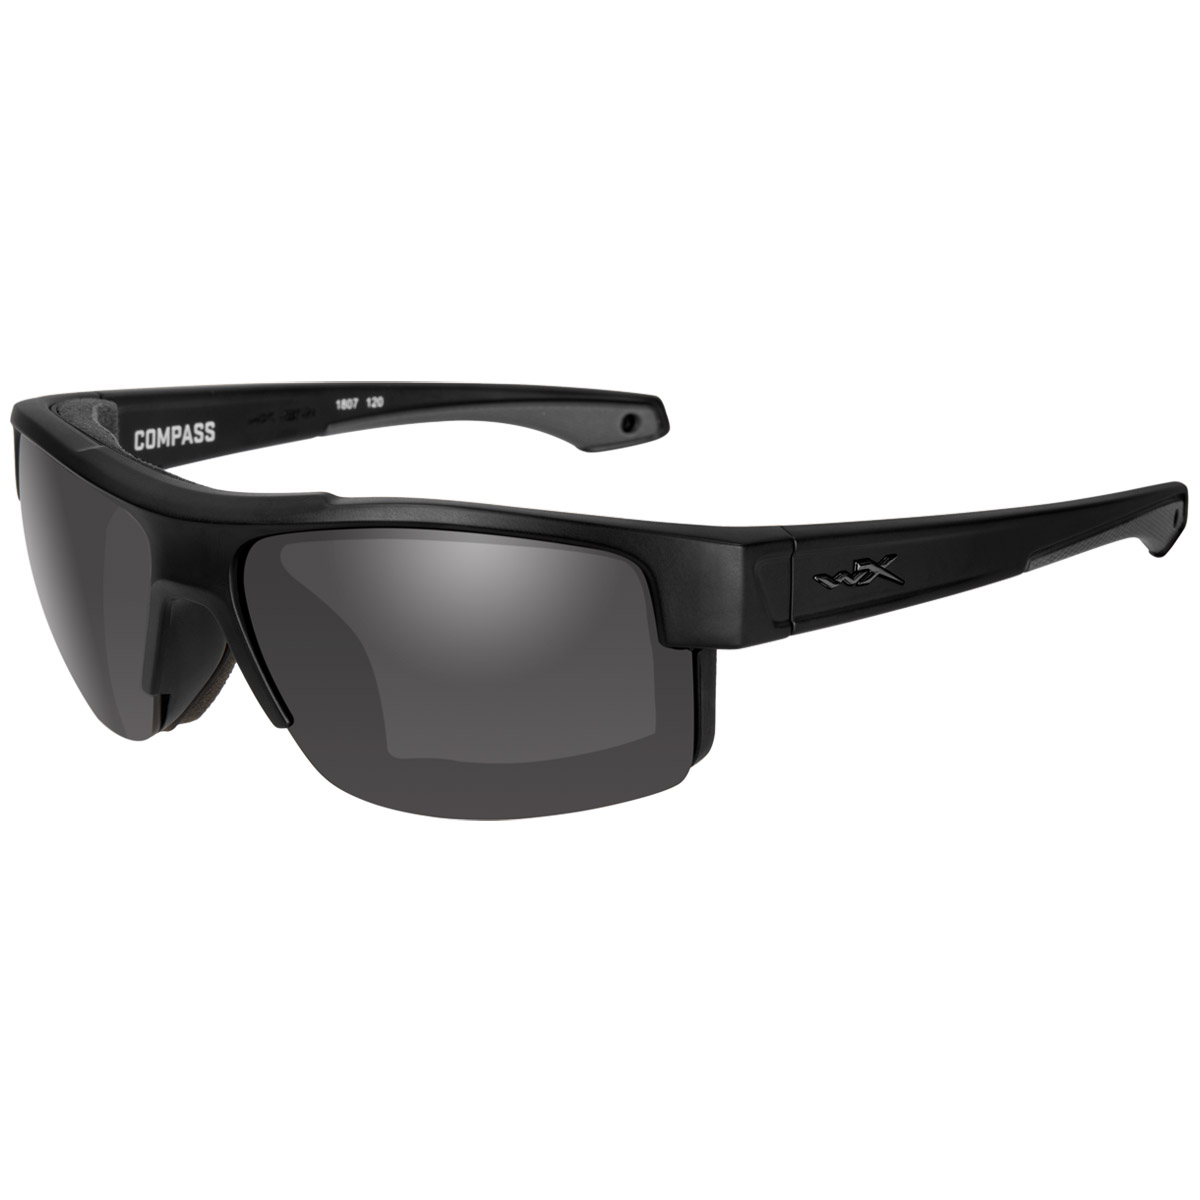 NEW WILEY X VALOR Safety Glasses Interchangeable Lens Black SUNGLASSES CHVAL06